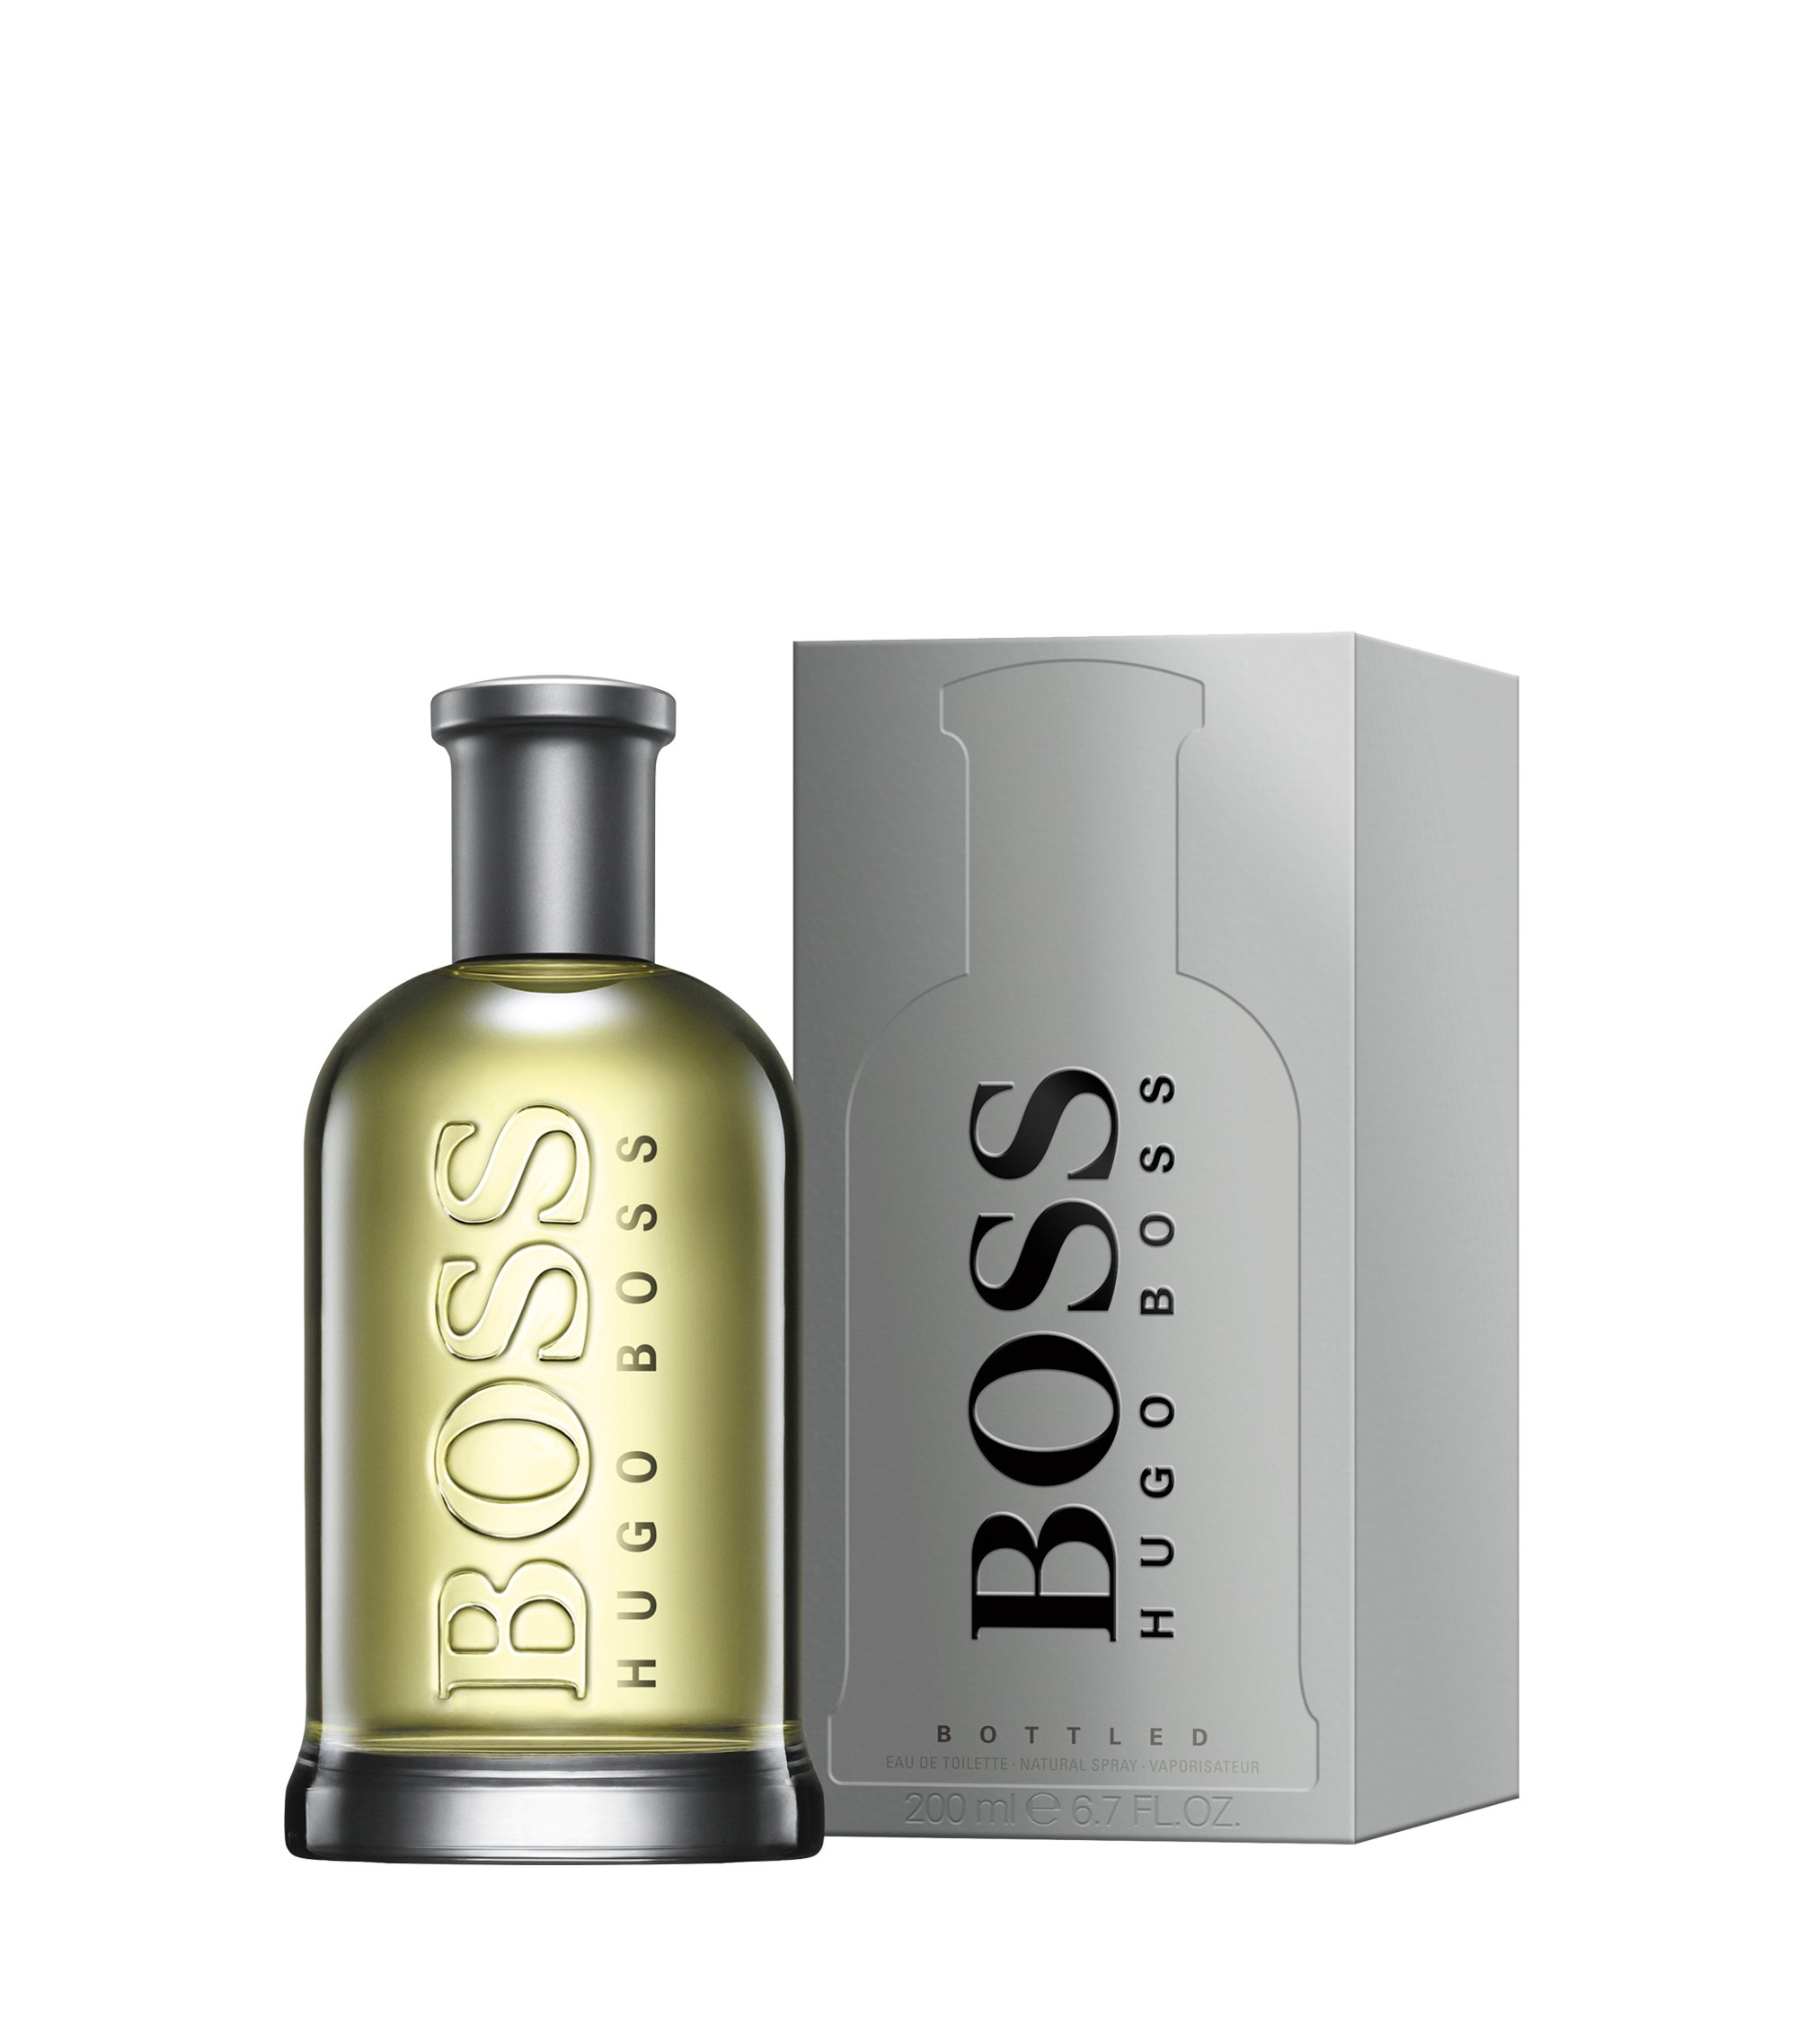 6.7 fl. oz. (200 mL) Eau de Toilette | BOSS Bottled, Assorted-Pre-Pack